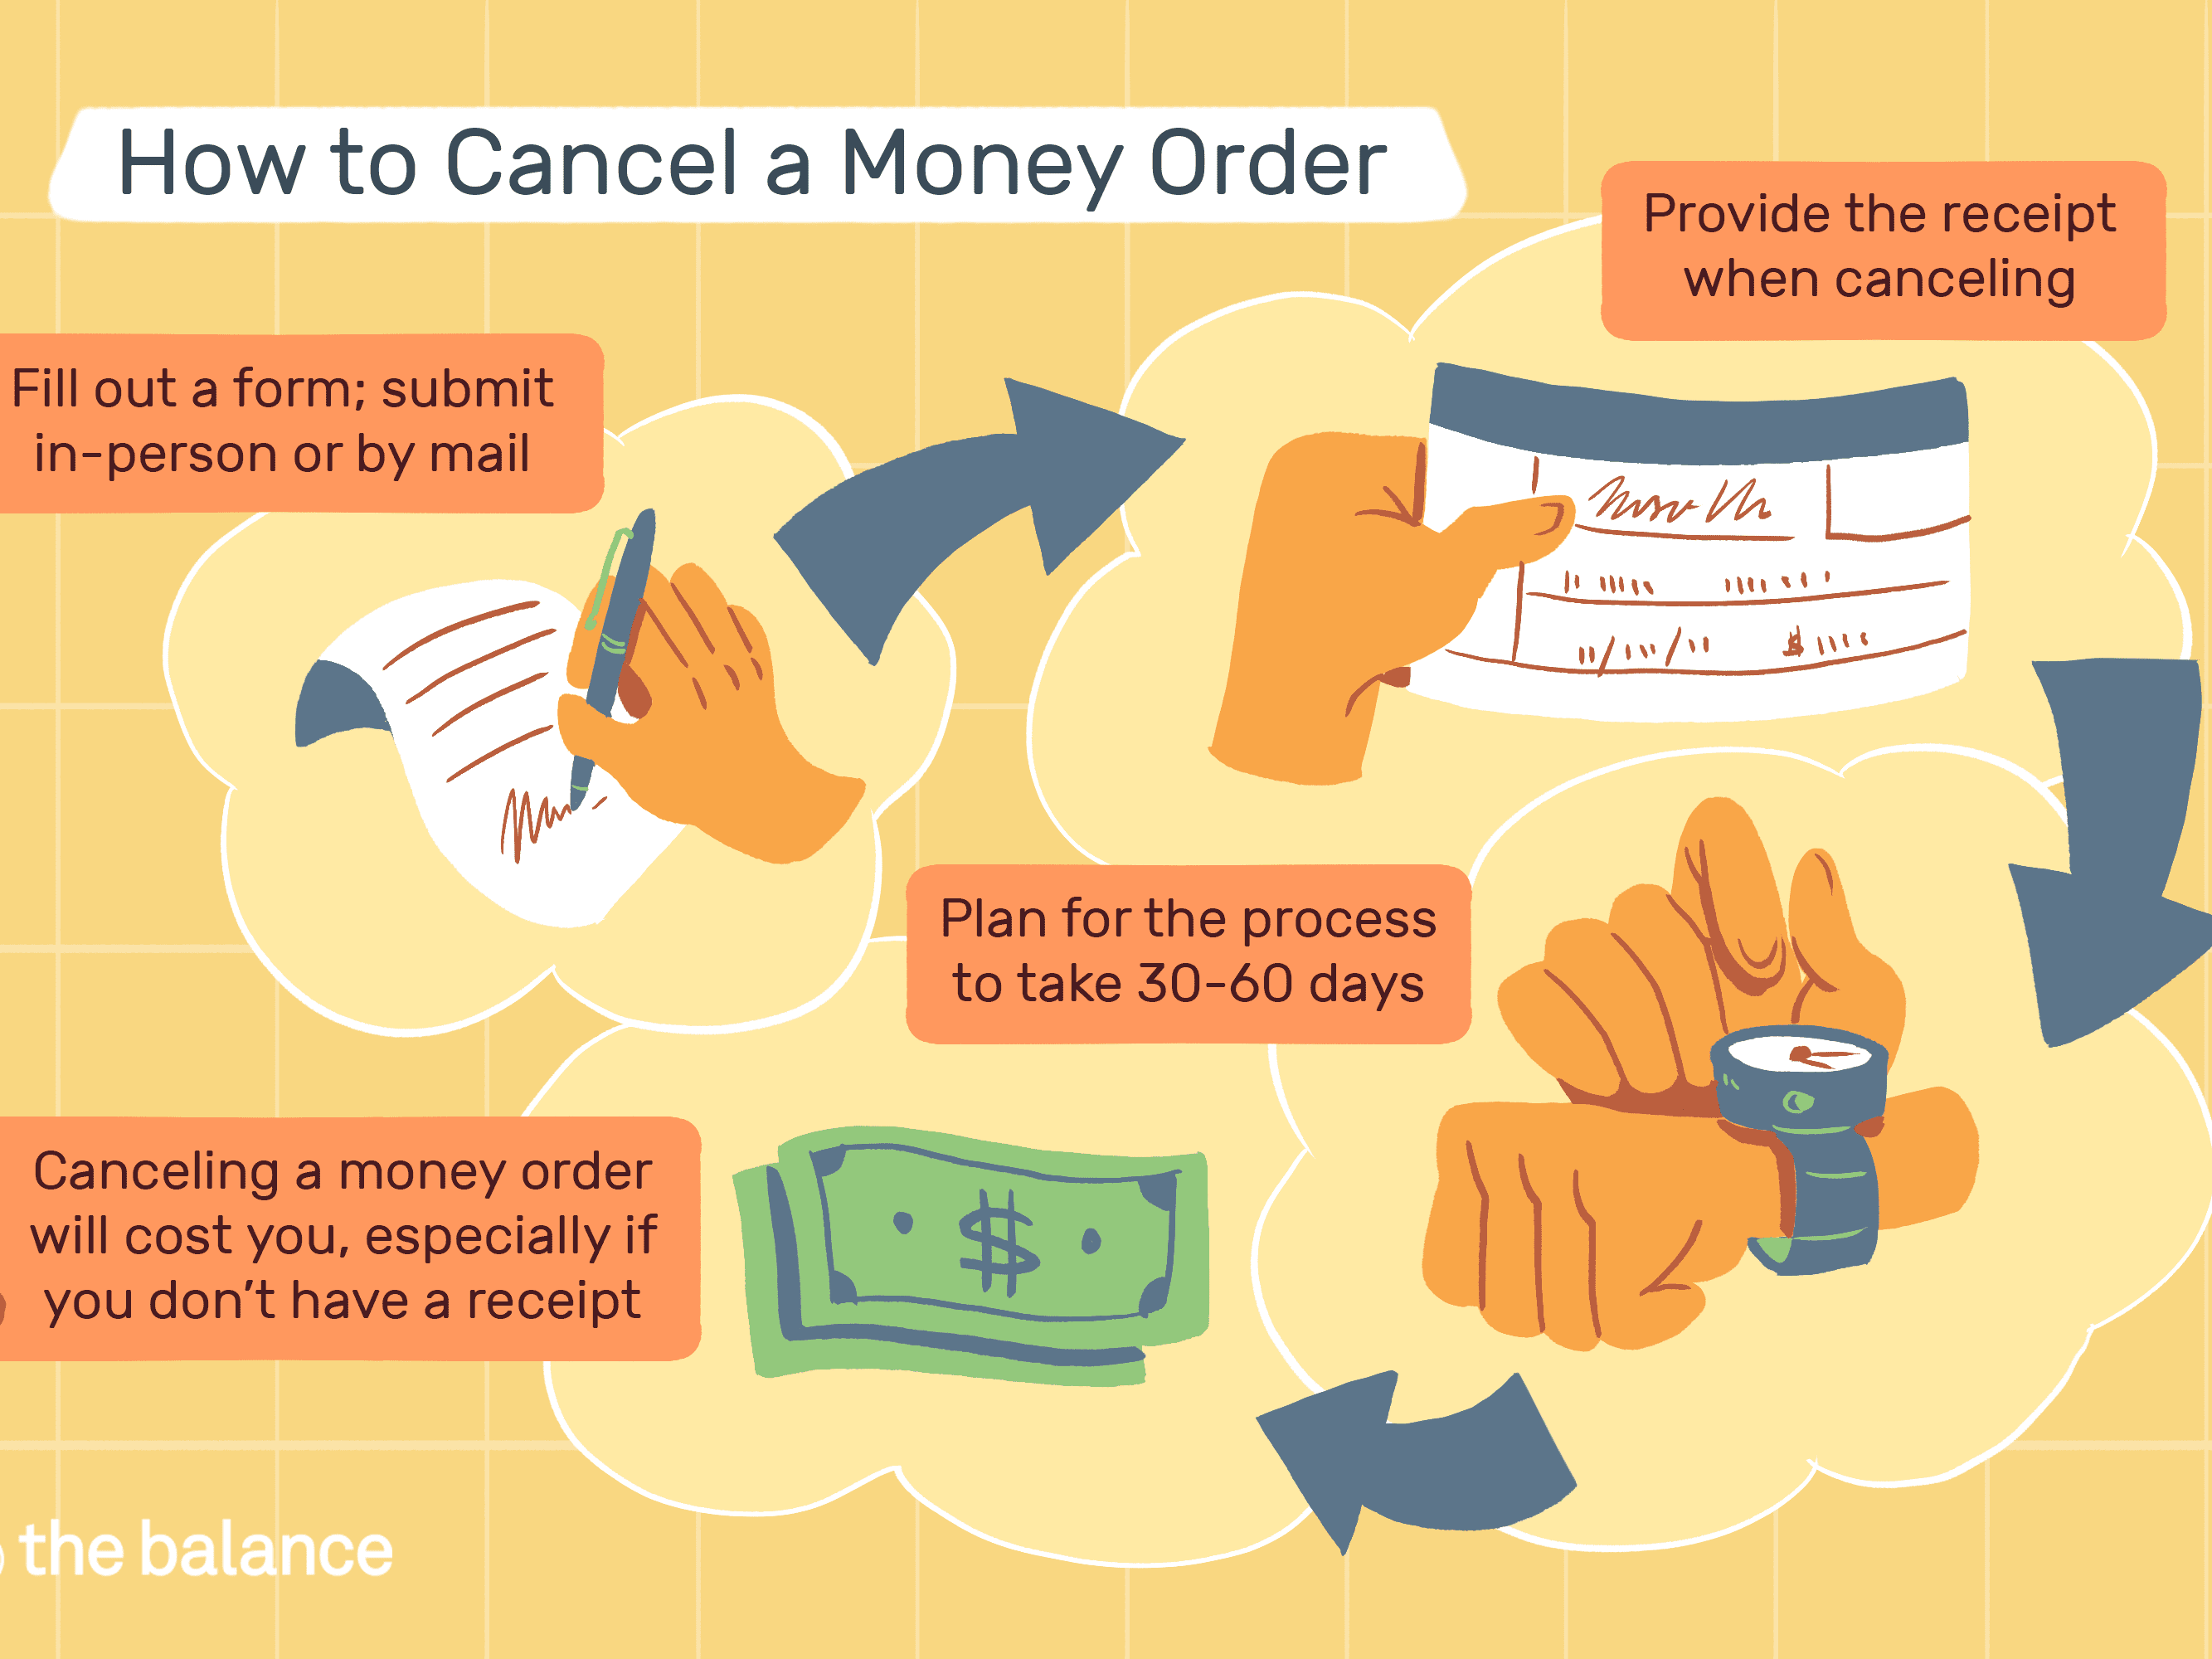 See How to Cancel or Replace Money Orders: Fees, Timeline